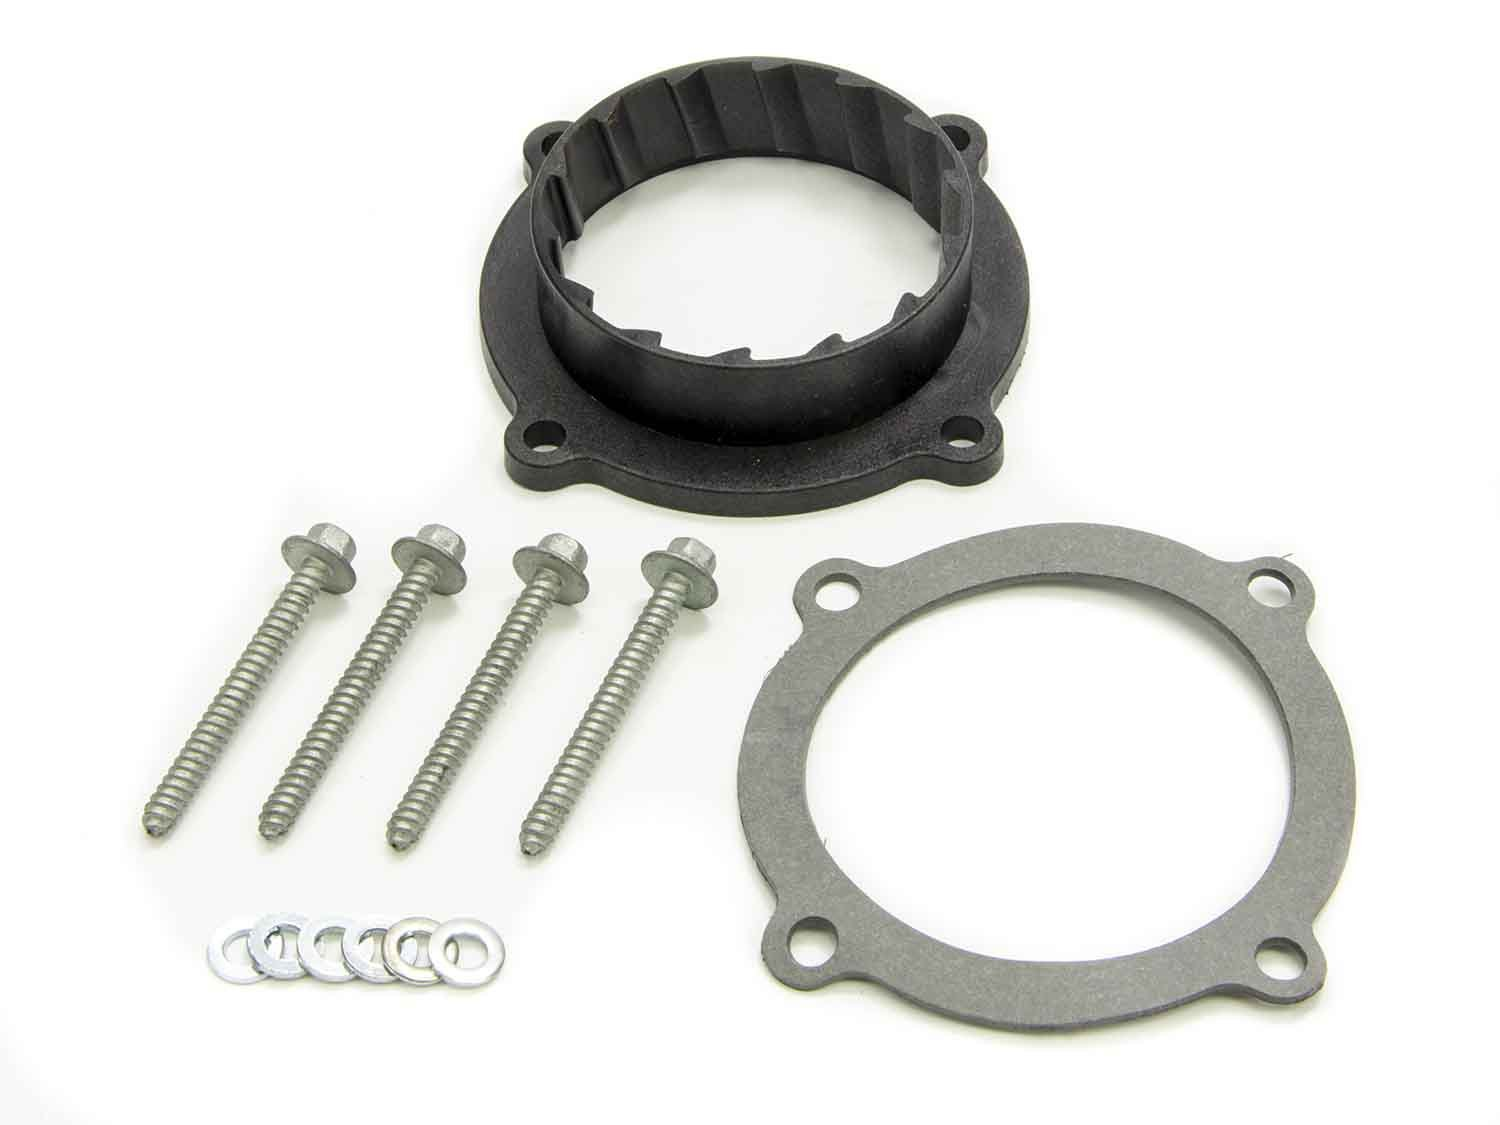 Volant 727636 Throttle Body Spacer